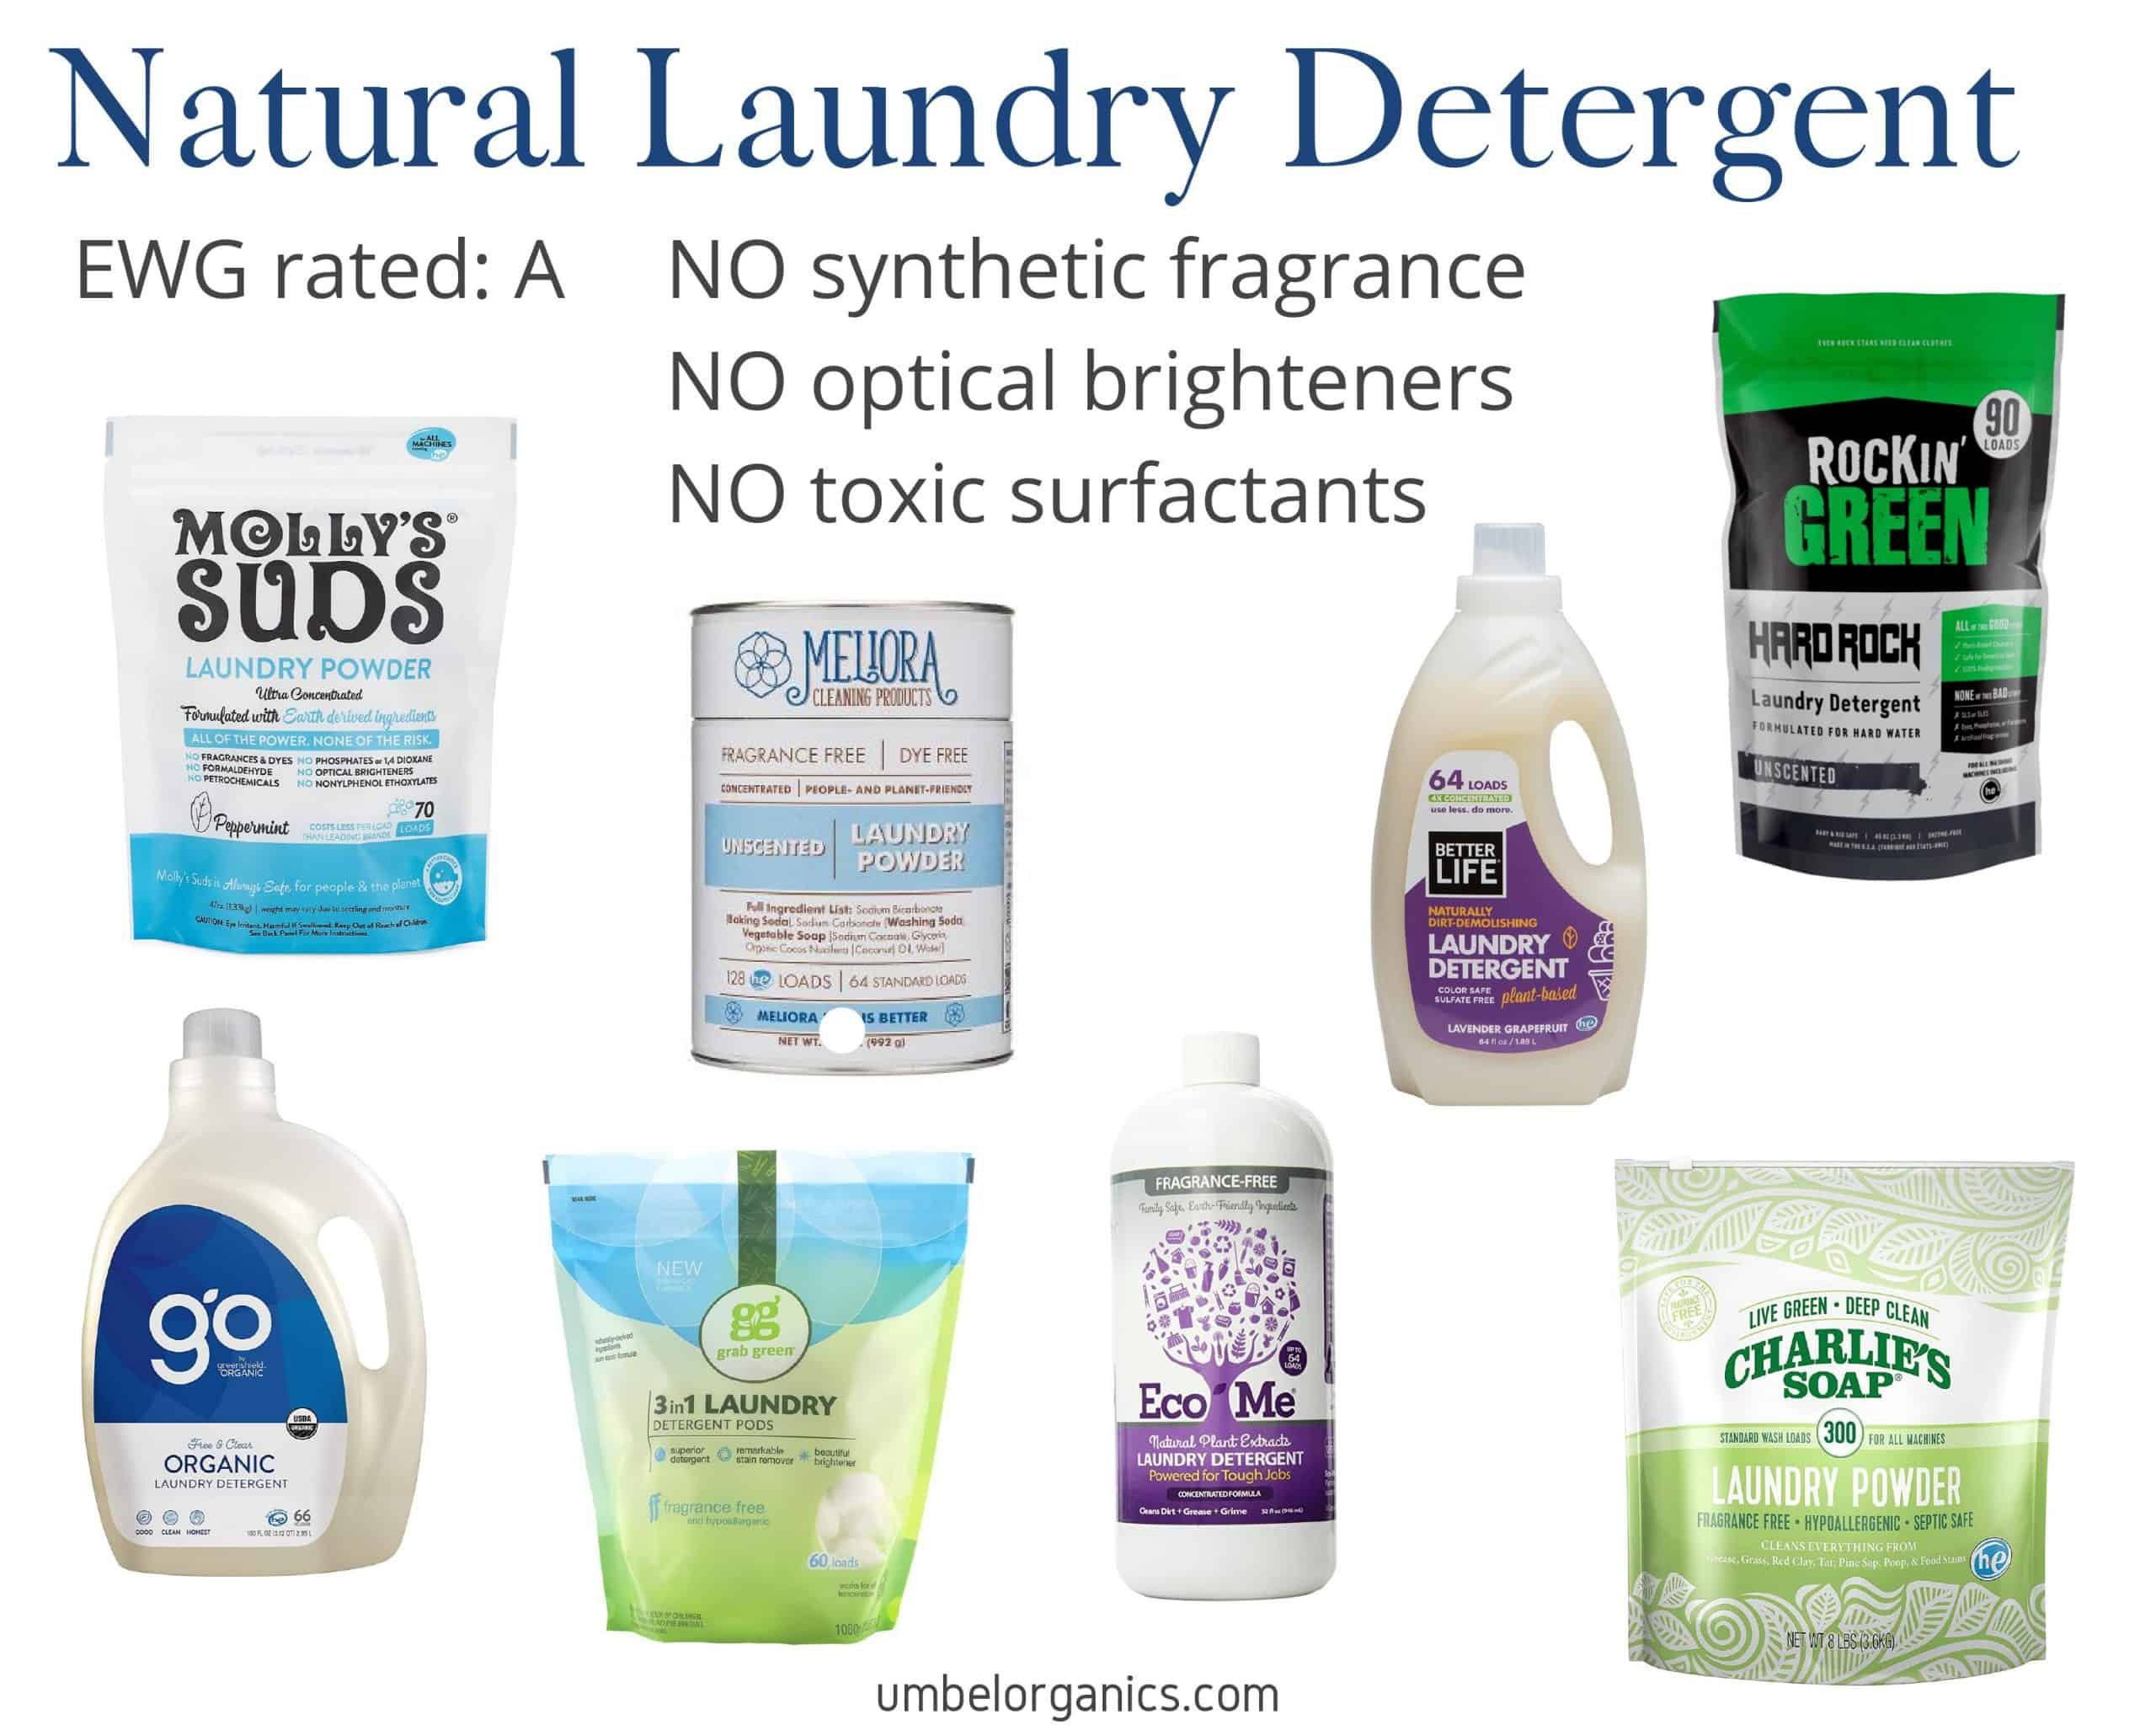 8 Natural Laundry Detergent Brands